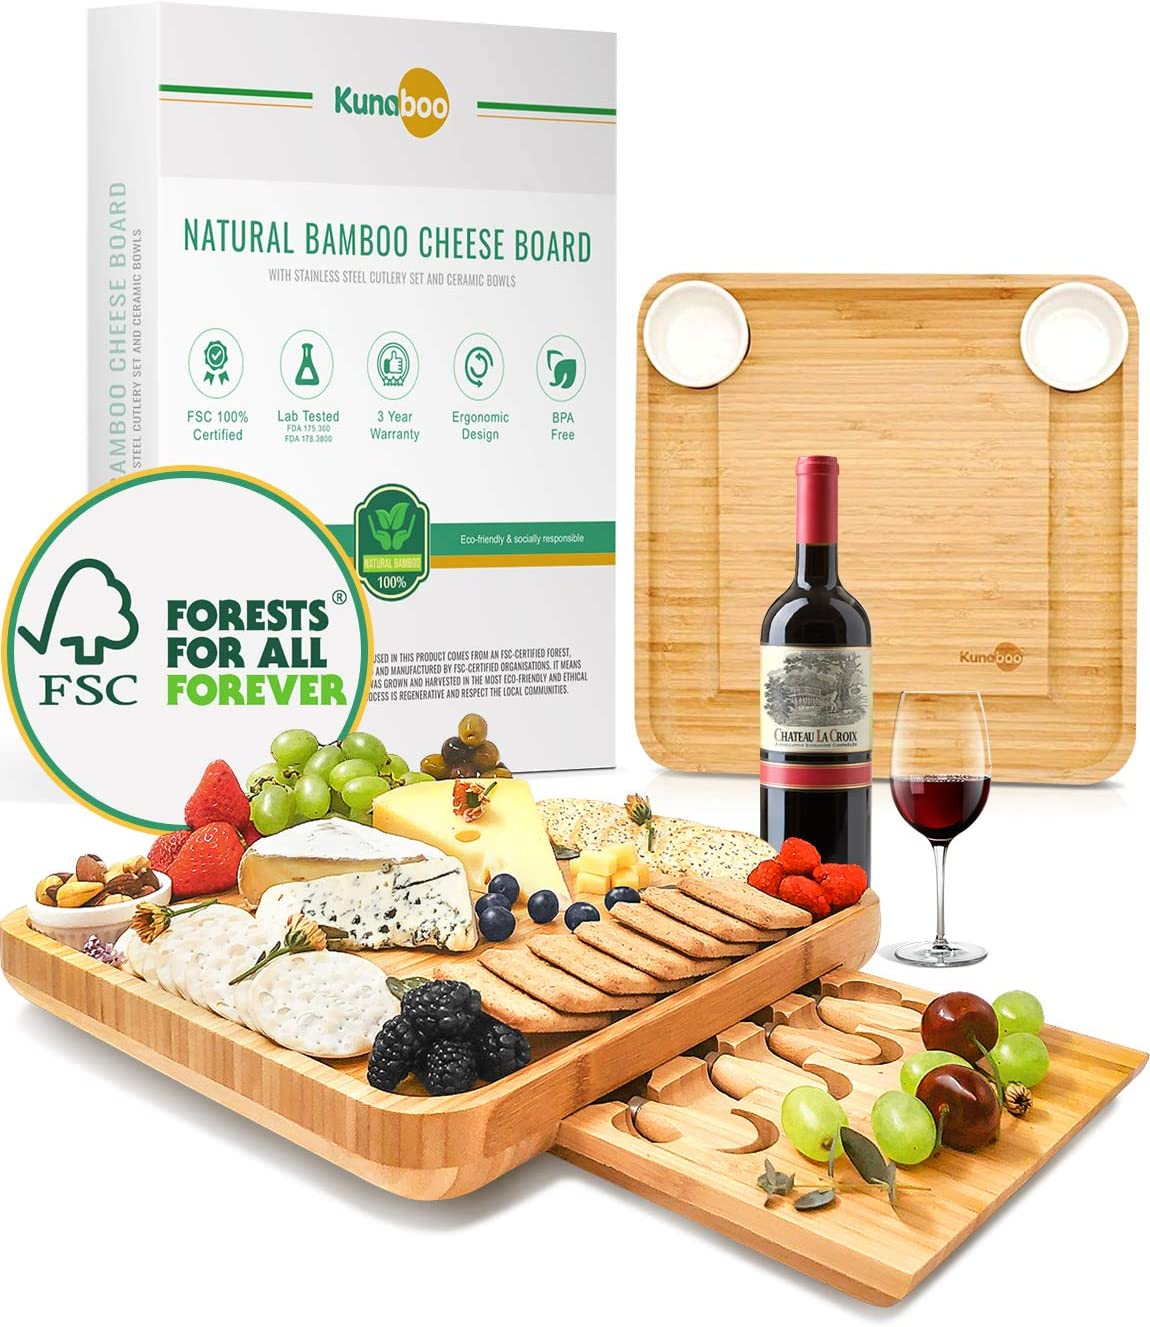 Kunaboo Bamboo cheese board and knife set - Charcuterie tray with cutlery set - FSC certified - Best for wine and cheese board parties, wedding, housewarming gift, cheeseboard and knife set